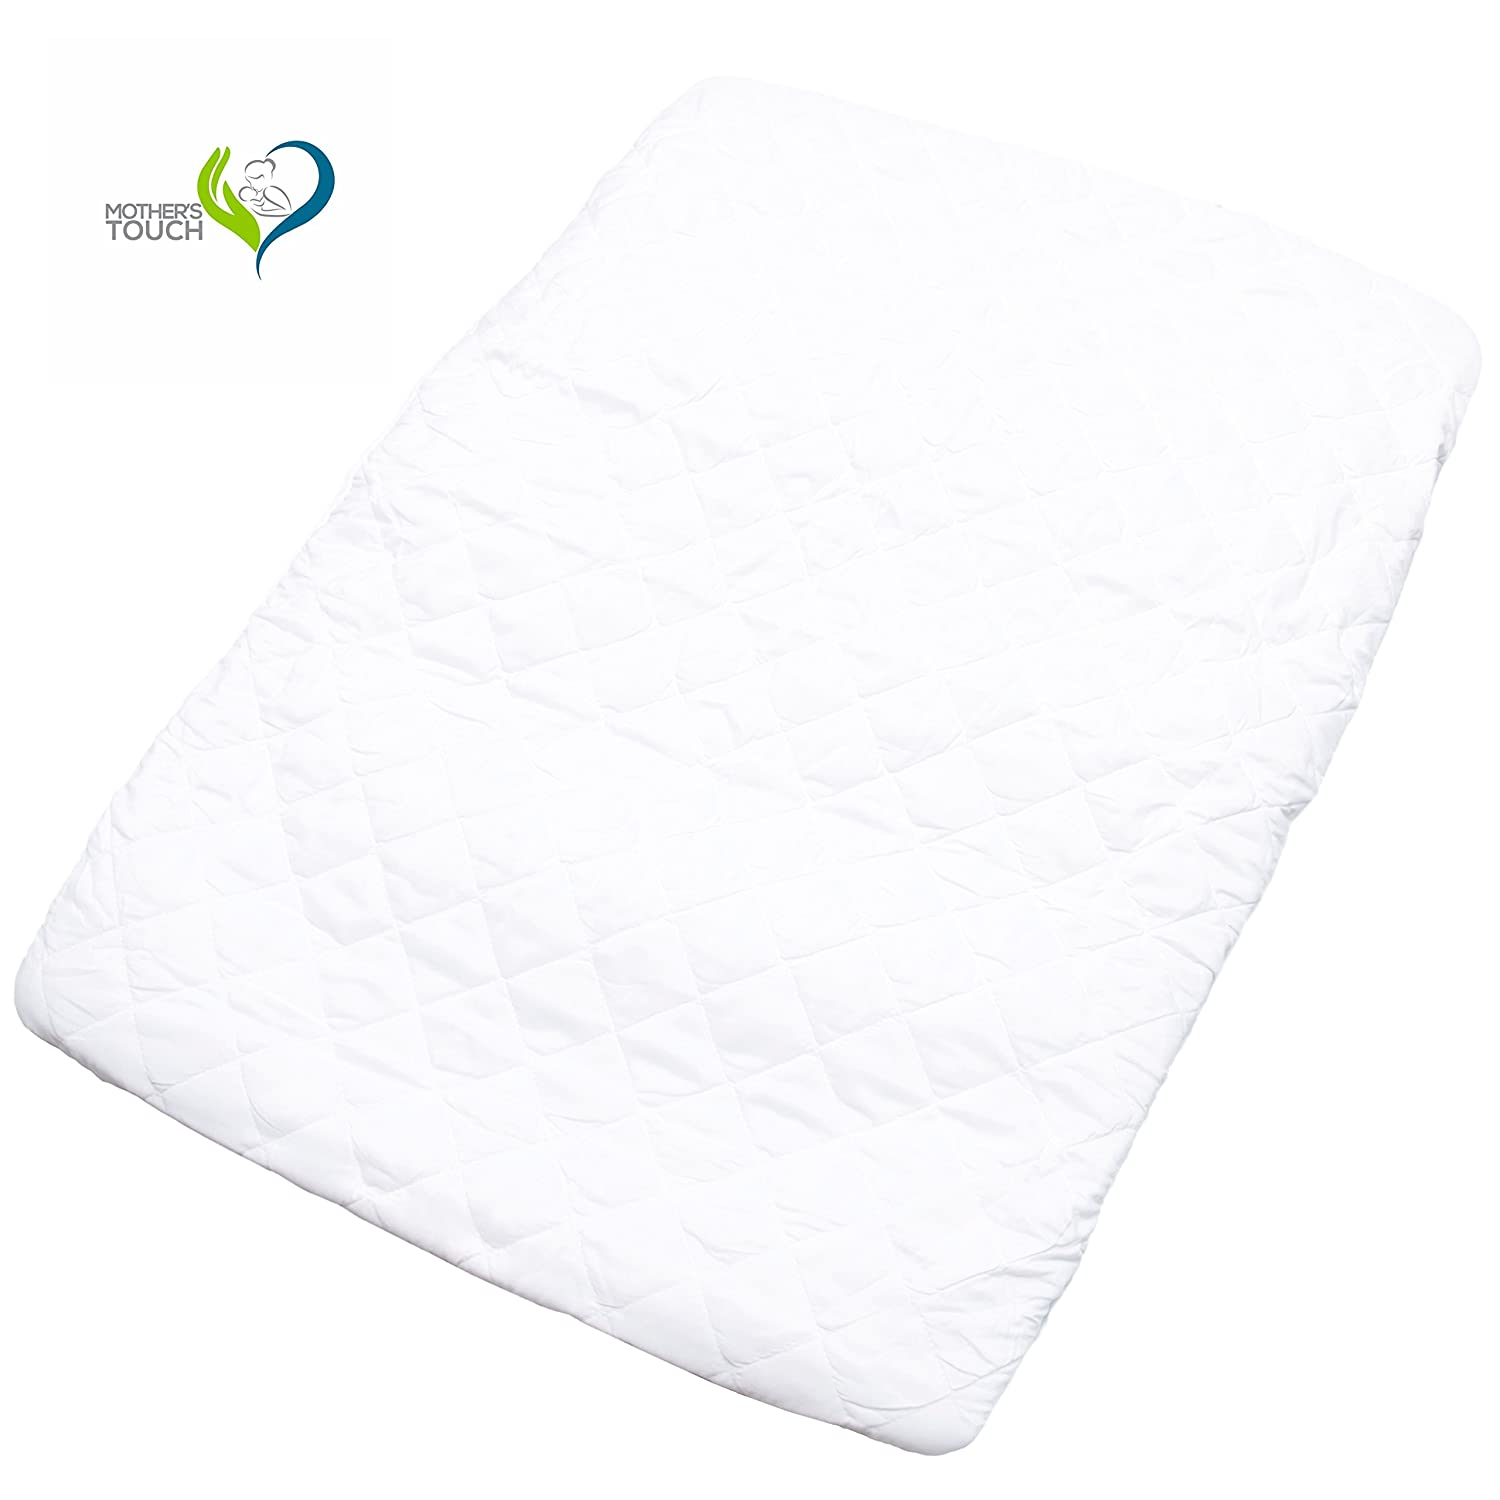 Waterproof Mothers Touch Pack N Play Padded Crib Mattress Cover Play Yards and Foldable Mattresses Fits All Baby Portable Cribs Dryer Safe and Hypoallergenic